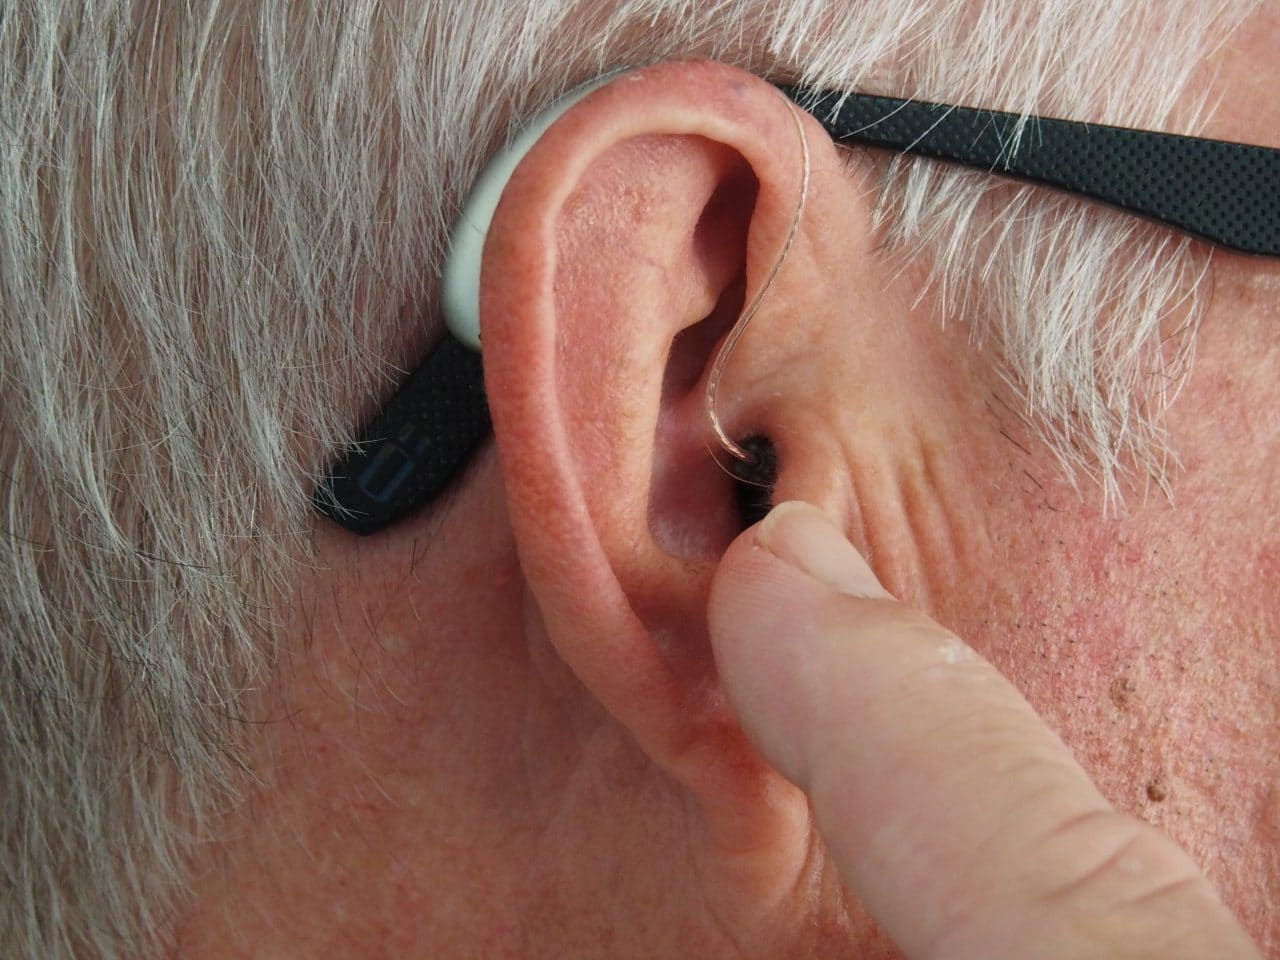 Close-up of a man's hearing aid